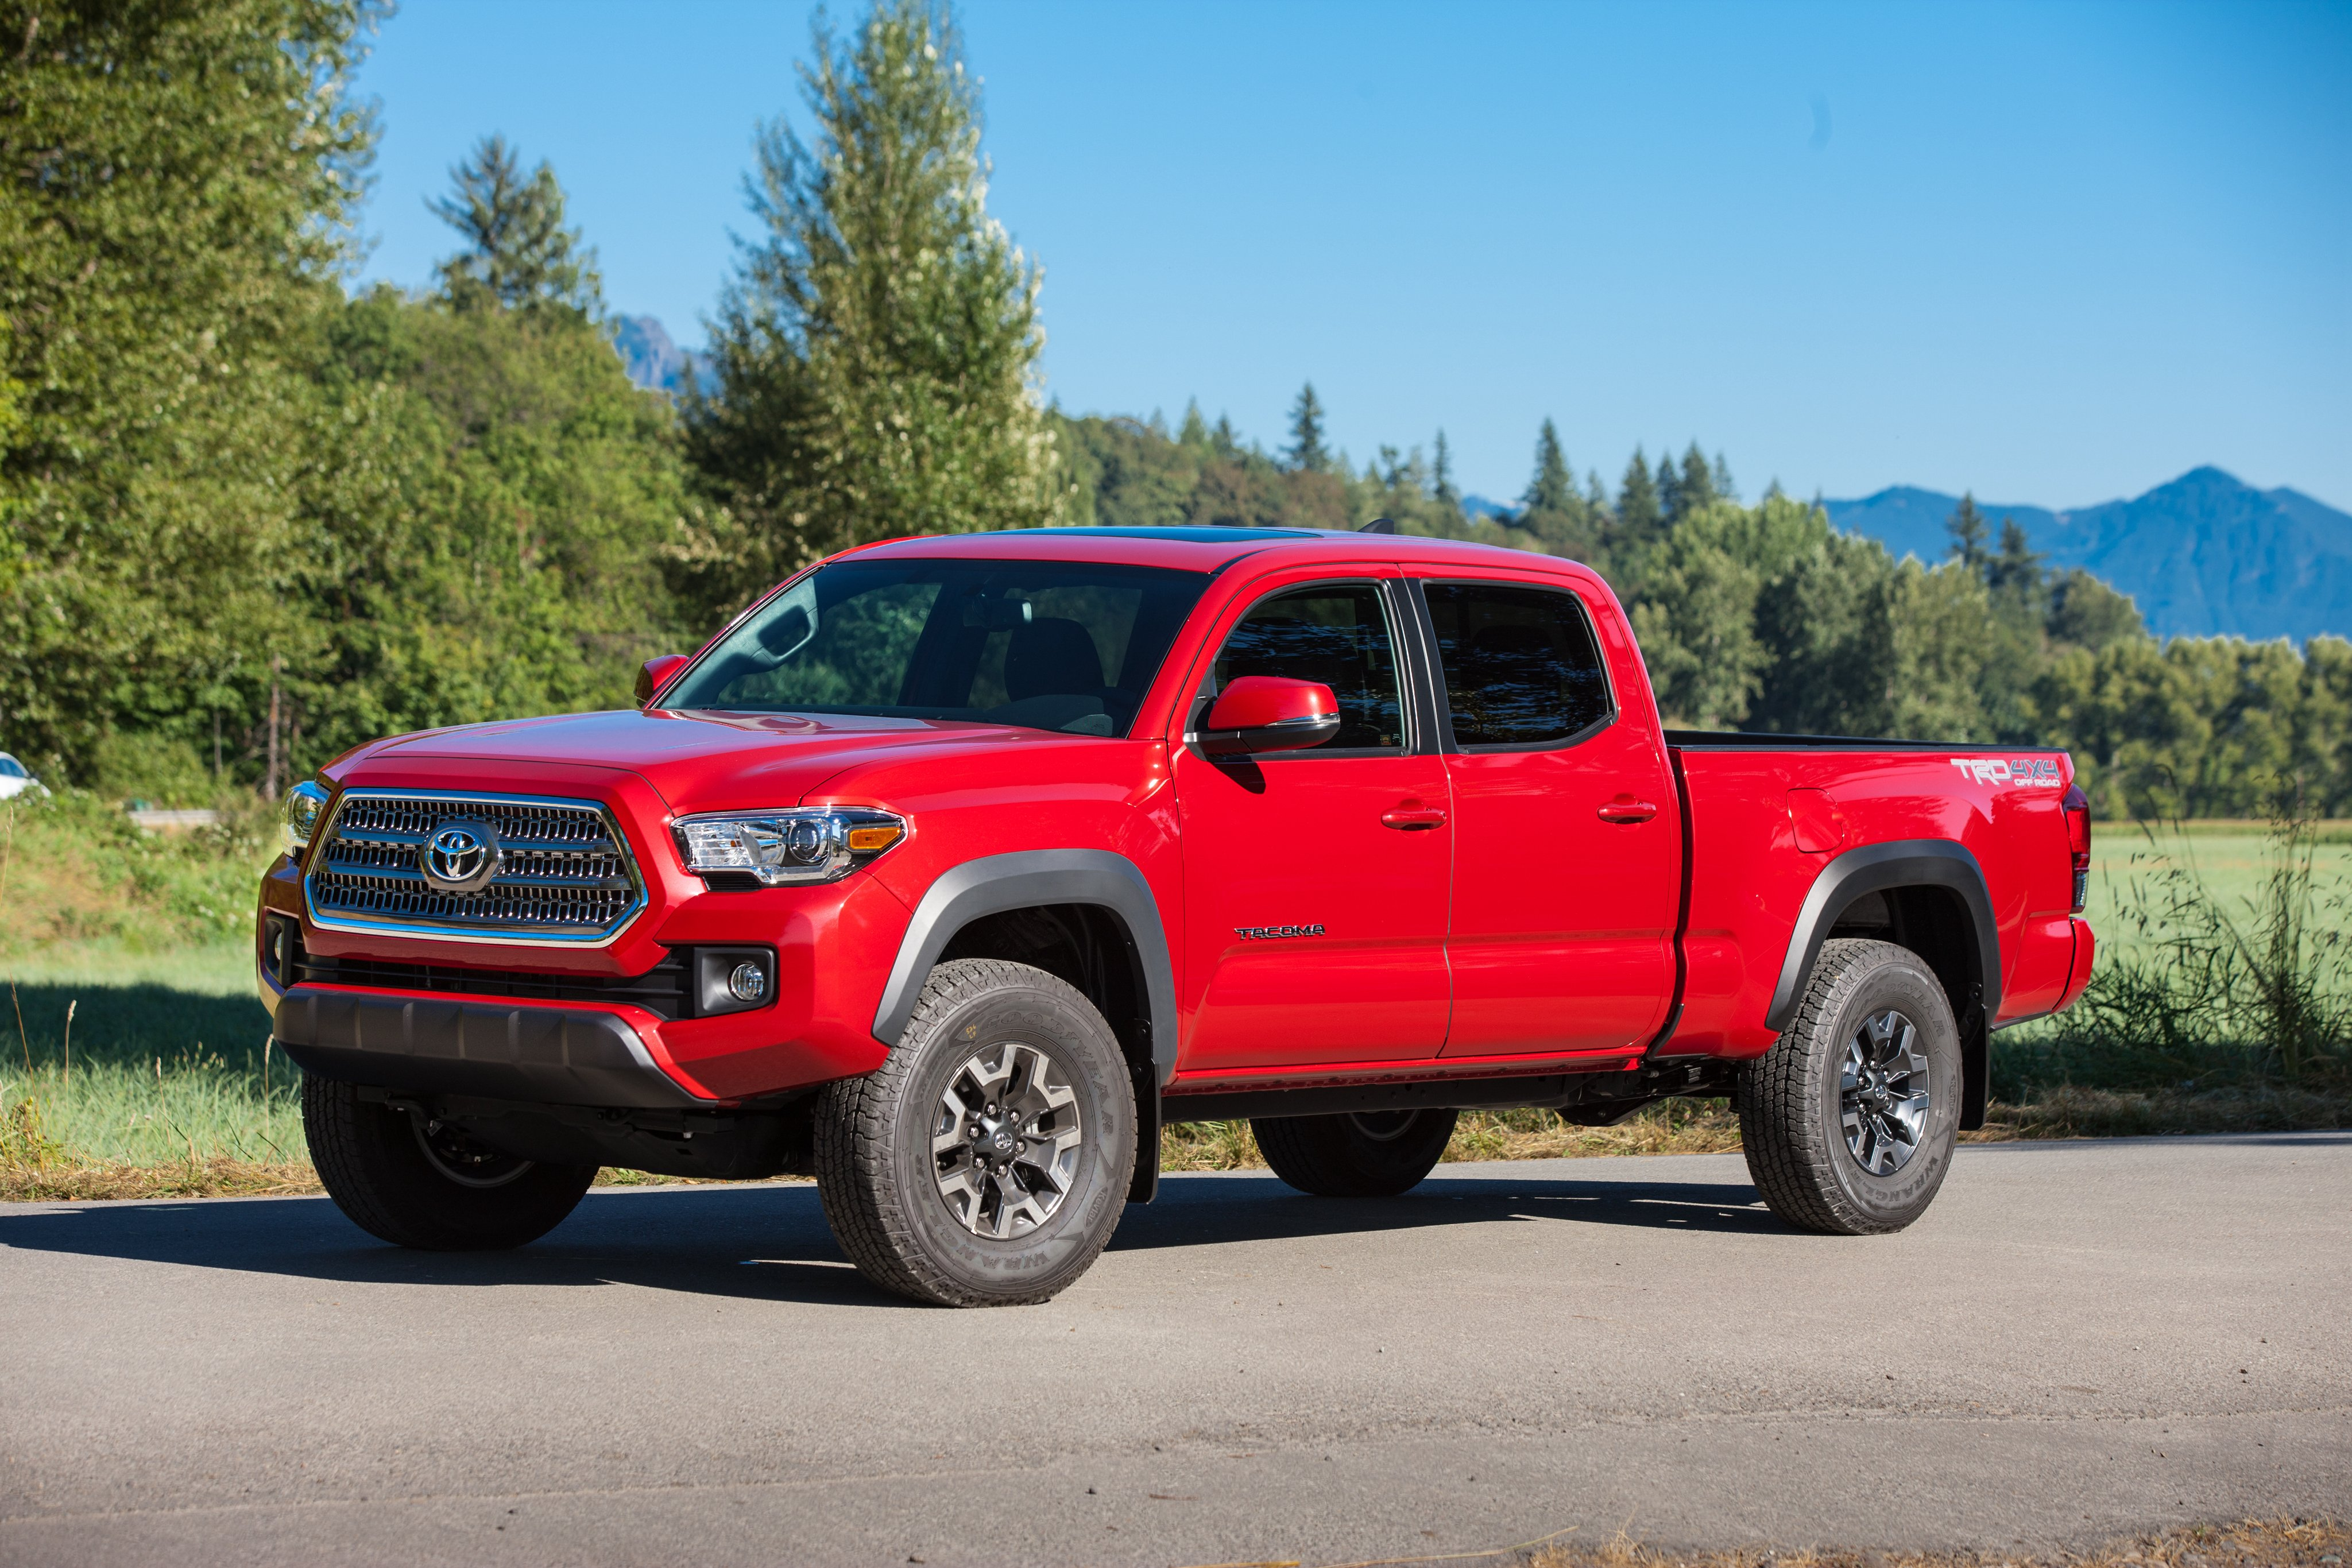 2016 toyota tacoma trd offroad double cab pickup 4x4 wallpaper 4096x2731 782580 wallpaperup. Black Bedroom Furniture Sets. Home Design Ideas